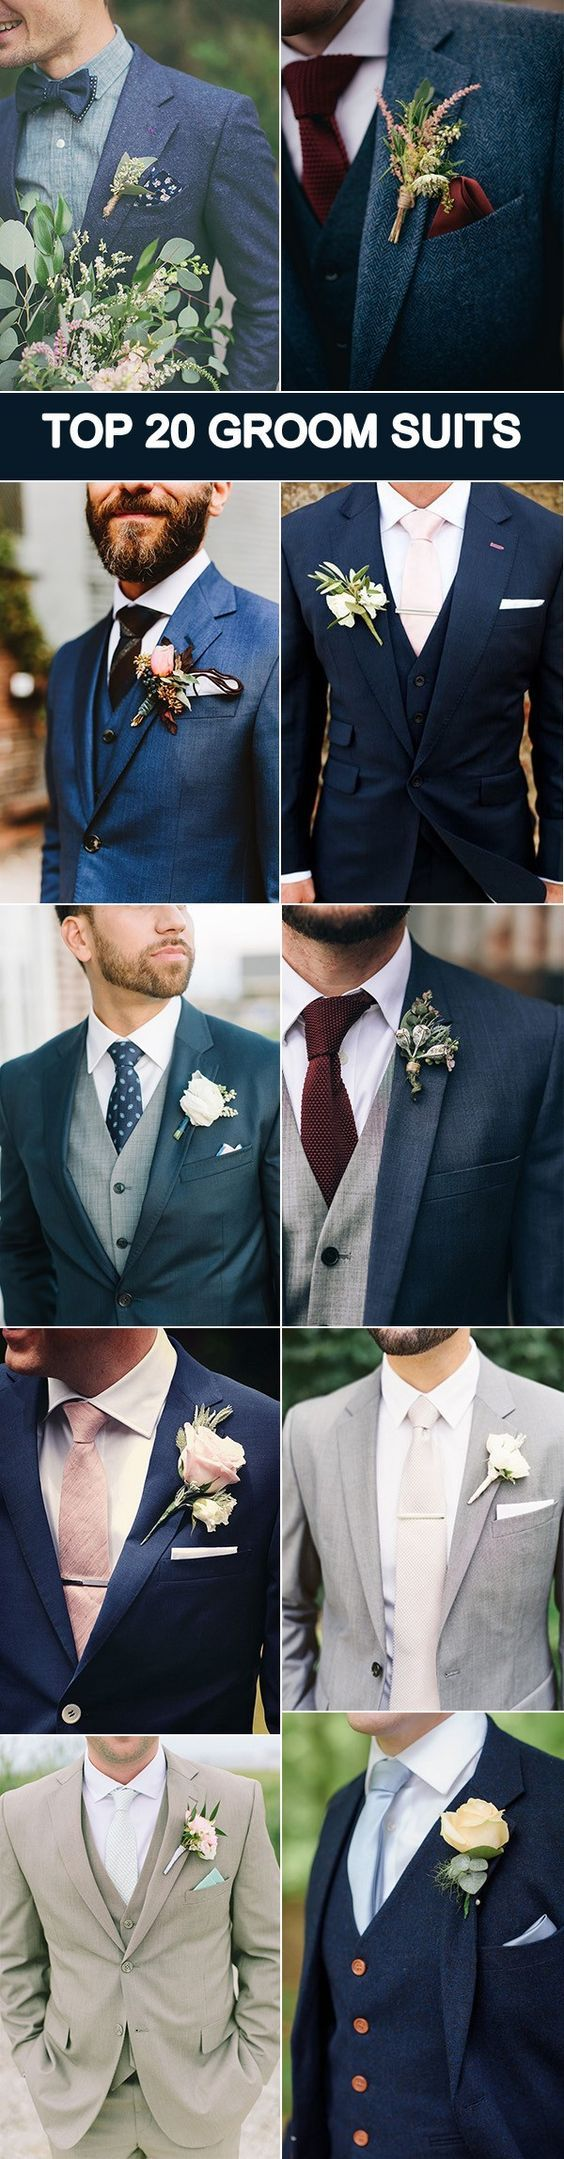 popular groom suit ideas for your big day weddings wedding and